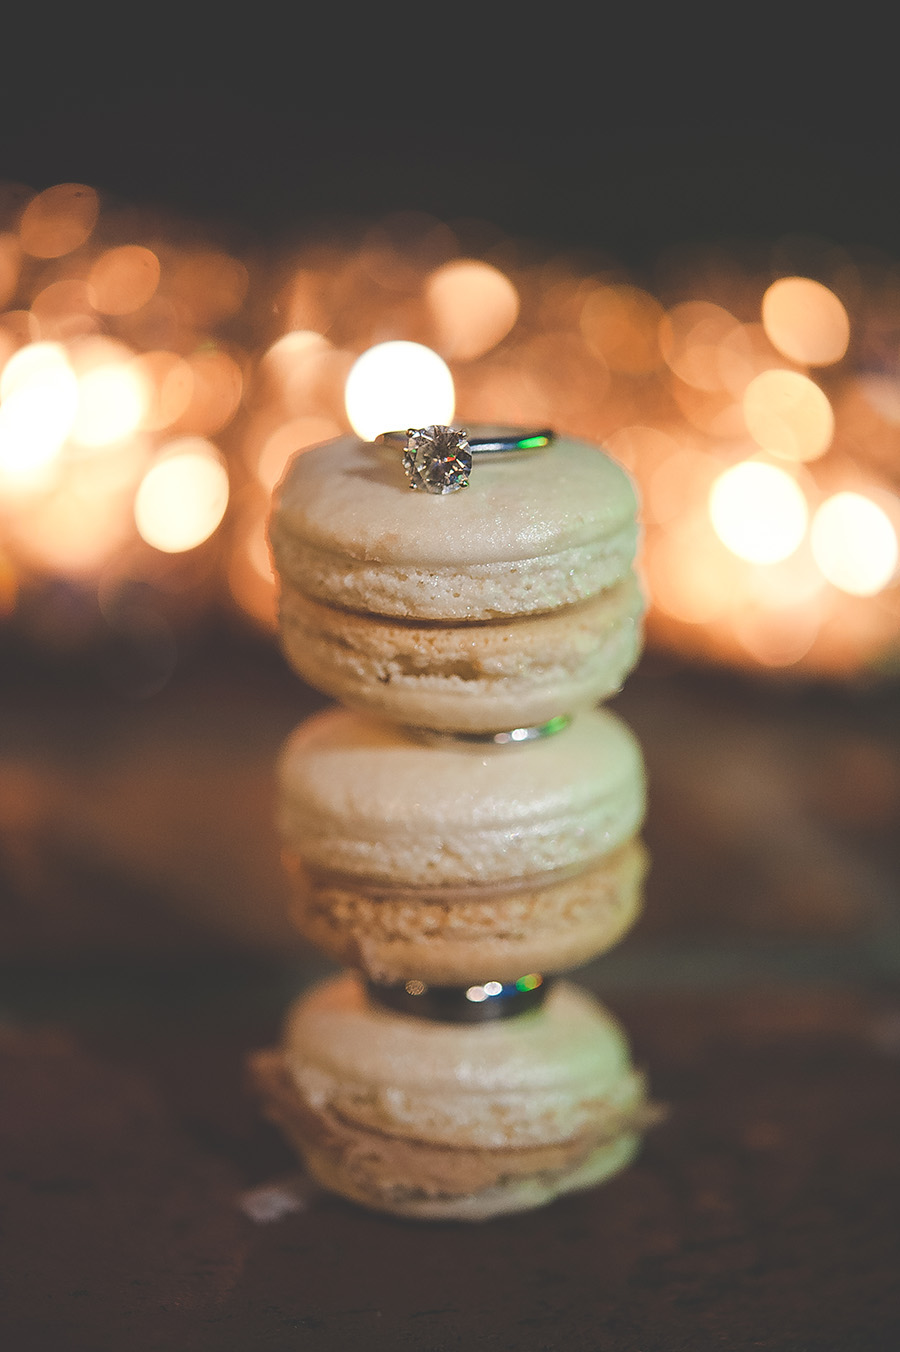 Bride and Groom Wedding Band and Engagement Ring on Macaroons Portrait